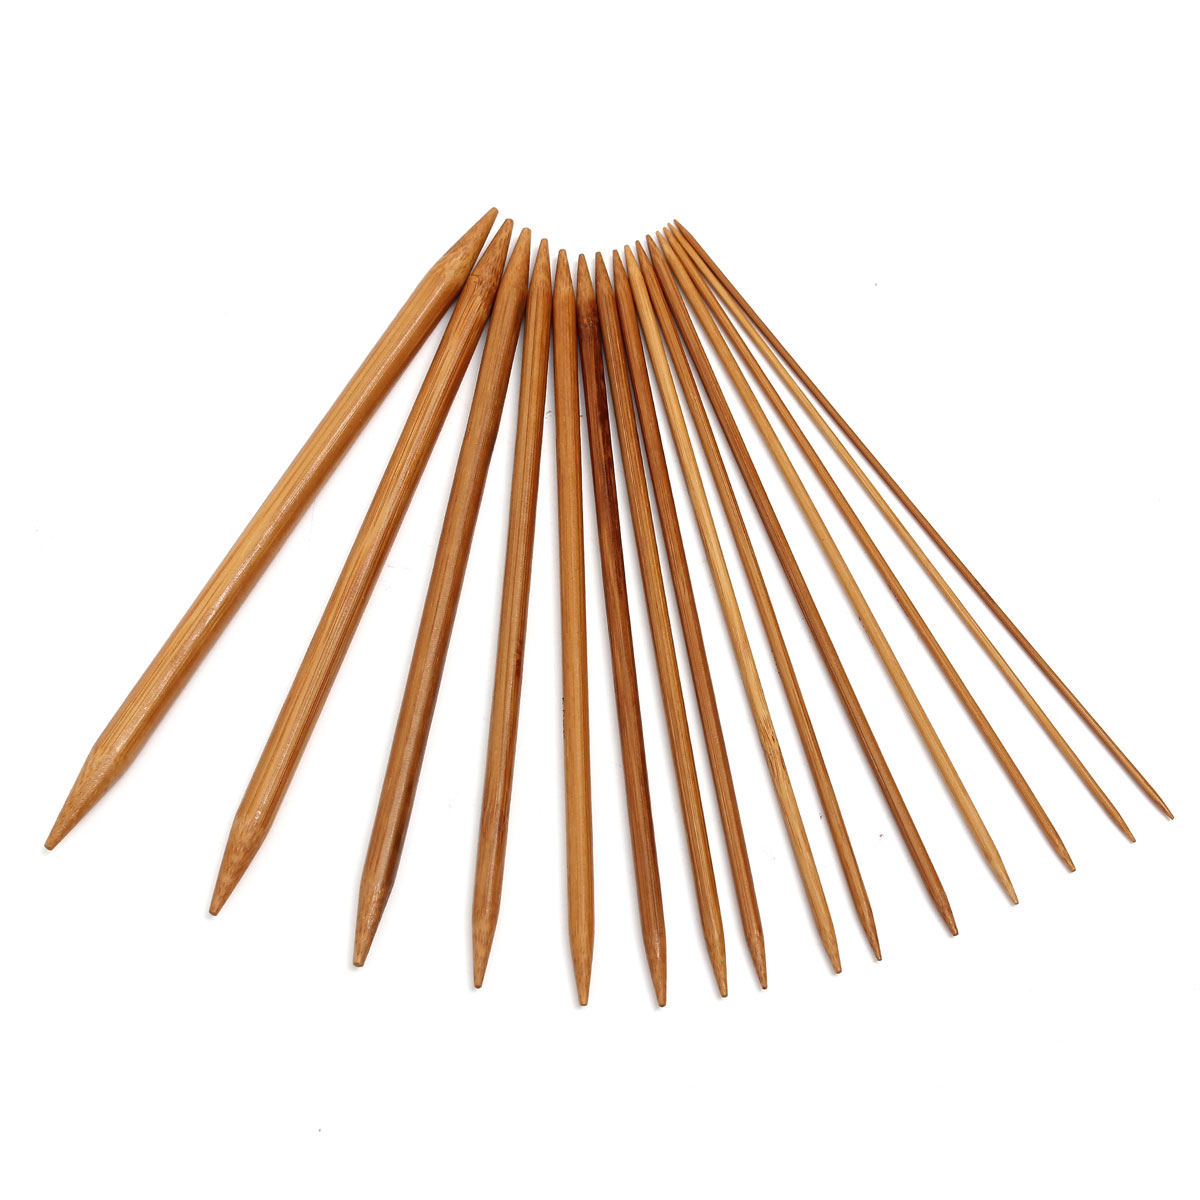 75pcs 15 Sizes Carbonized Bamboo Double Pointed Knitting Needles Hat Sweater Scarf Crochet Hook